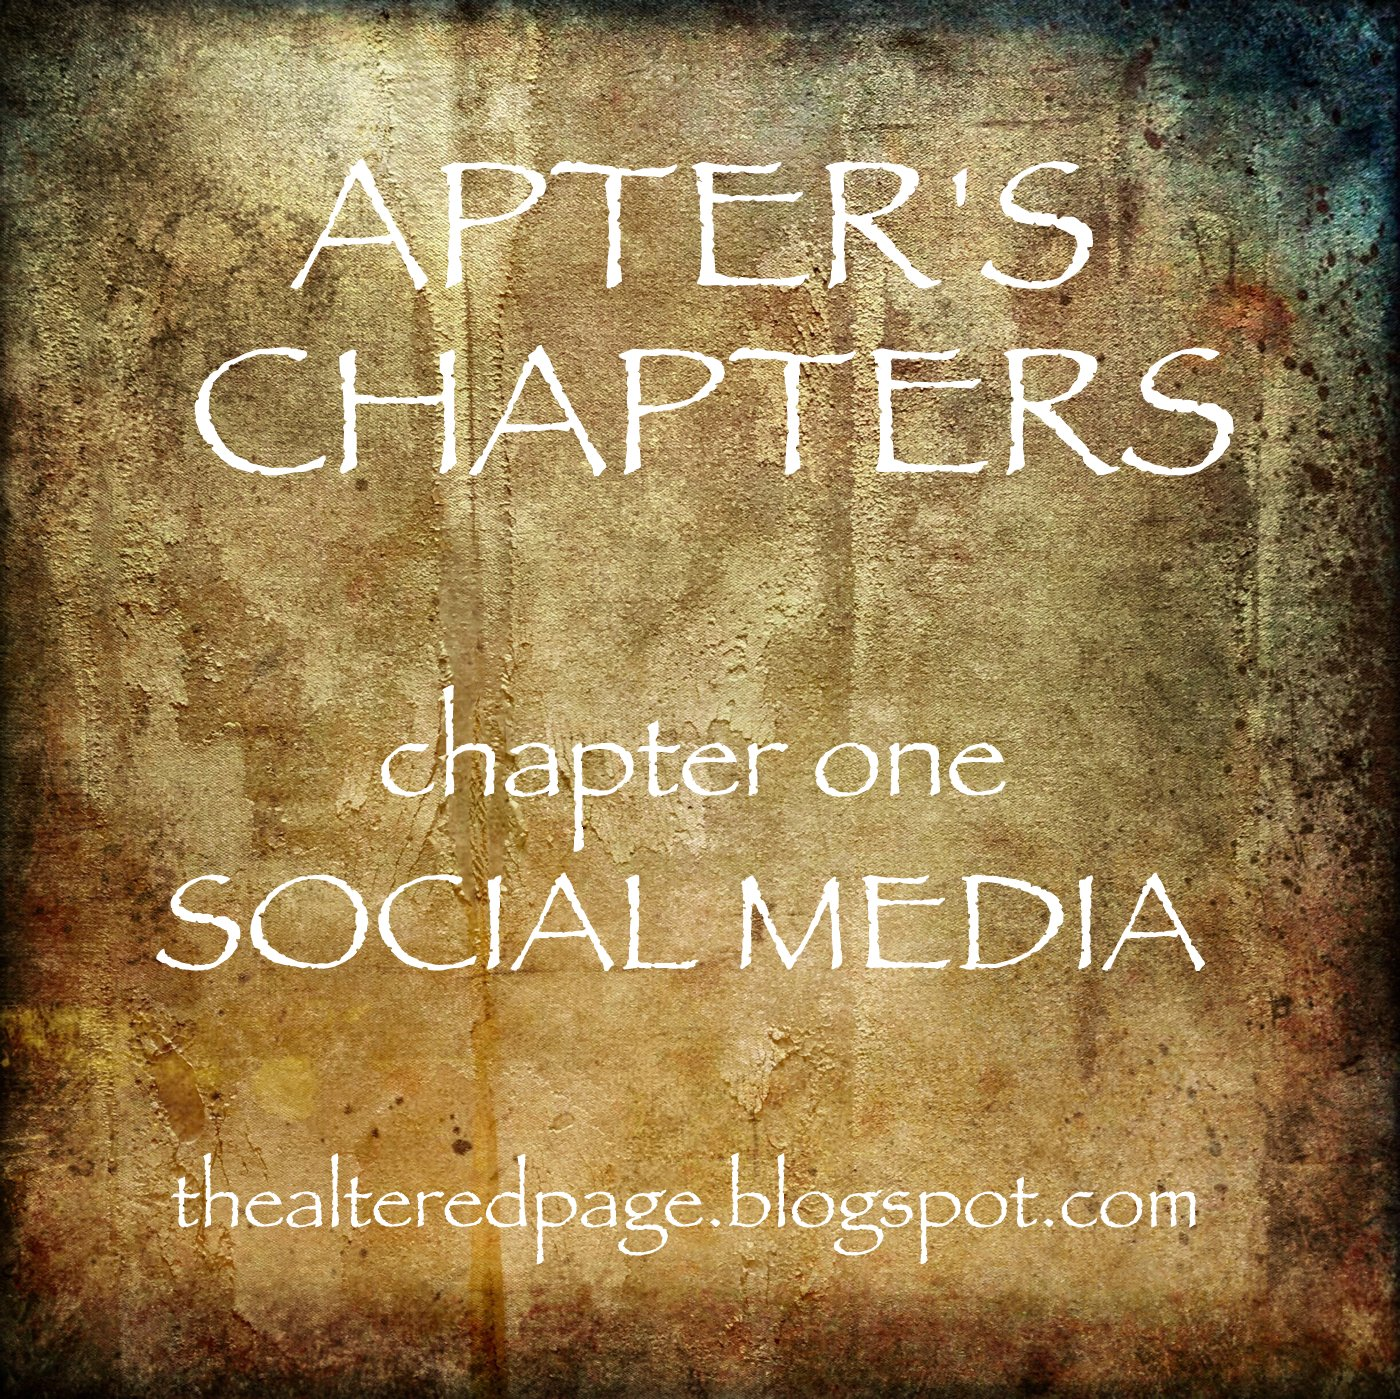 apter's chapters